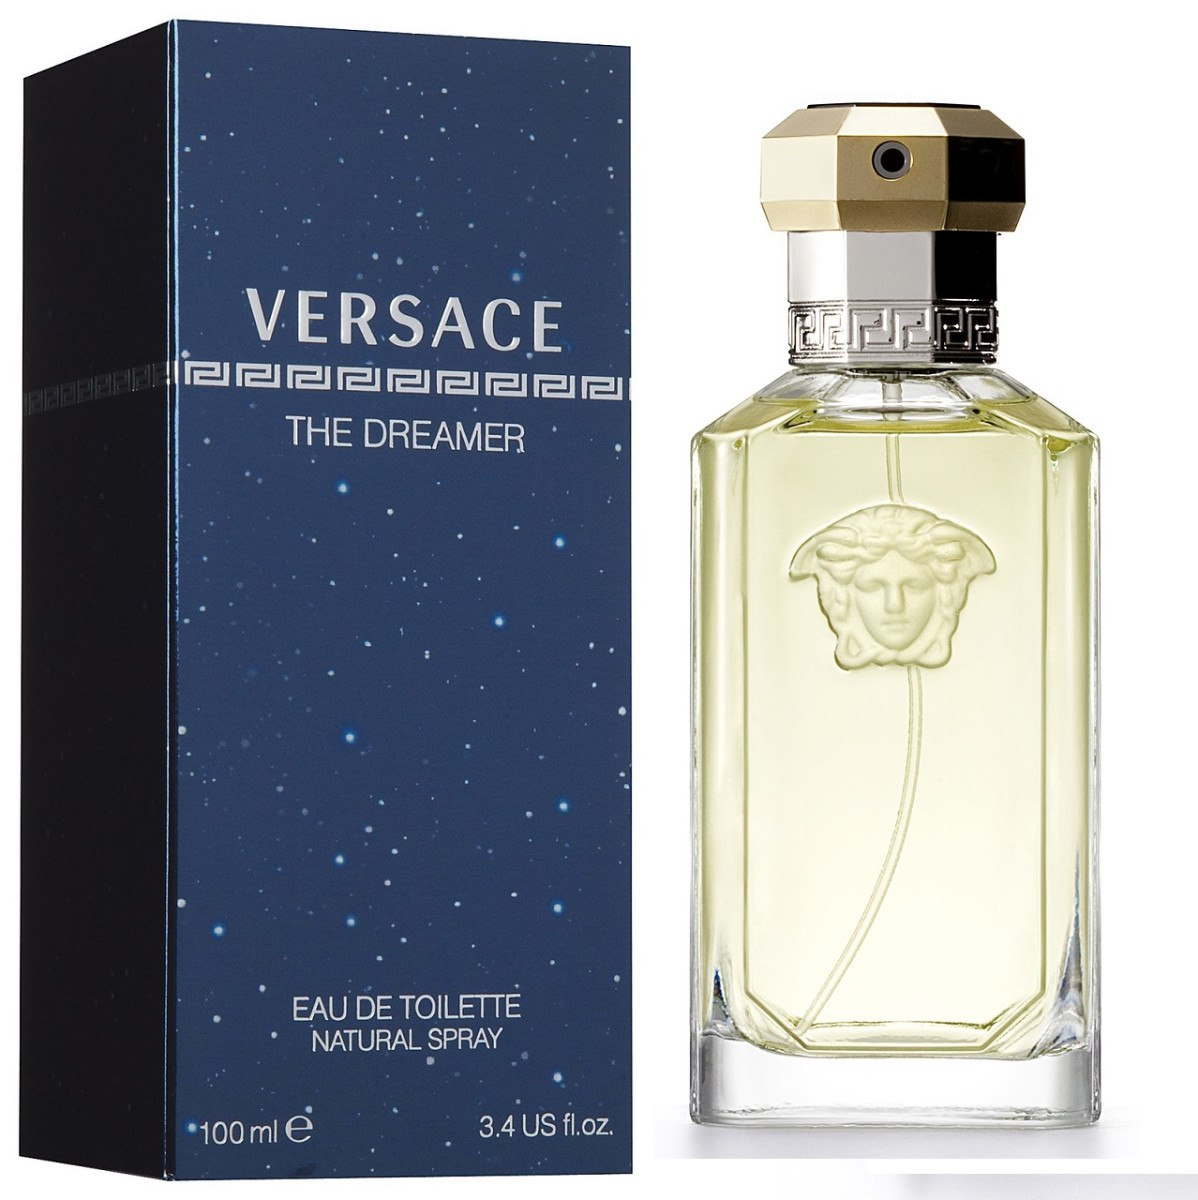 versace-thedreamer